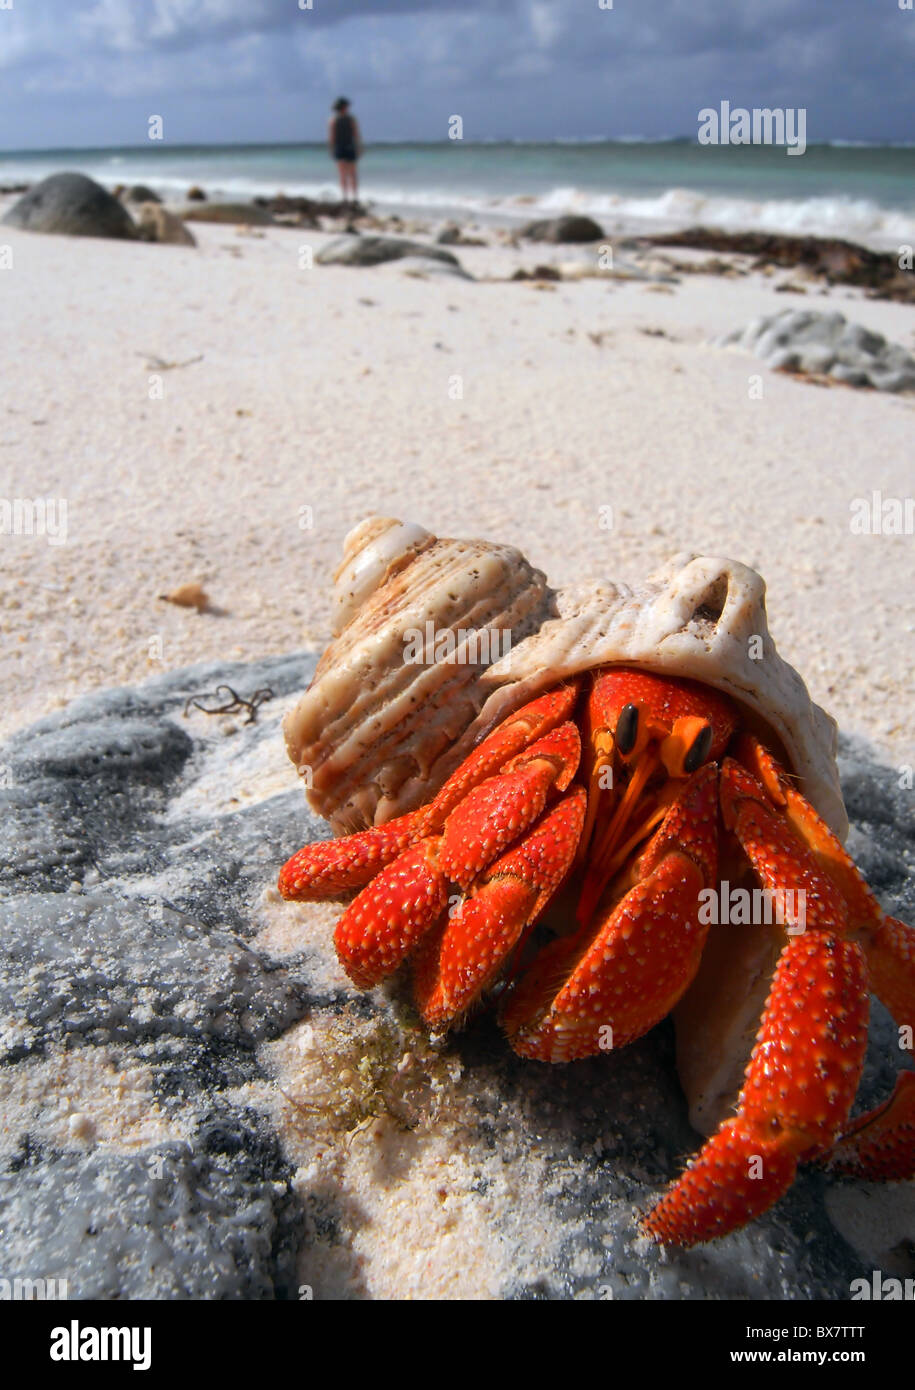 Hermit crab (Coenobita sp.) on the beach of West Island, Cocos Keeling, Indian Ocean - Stock Image